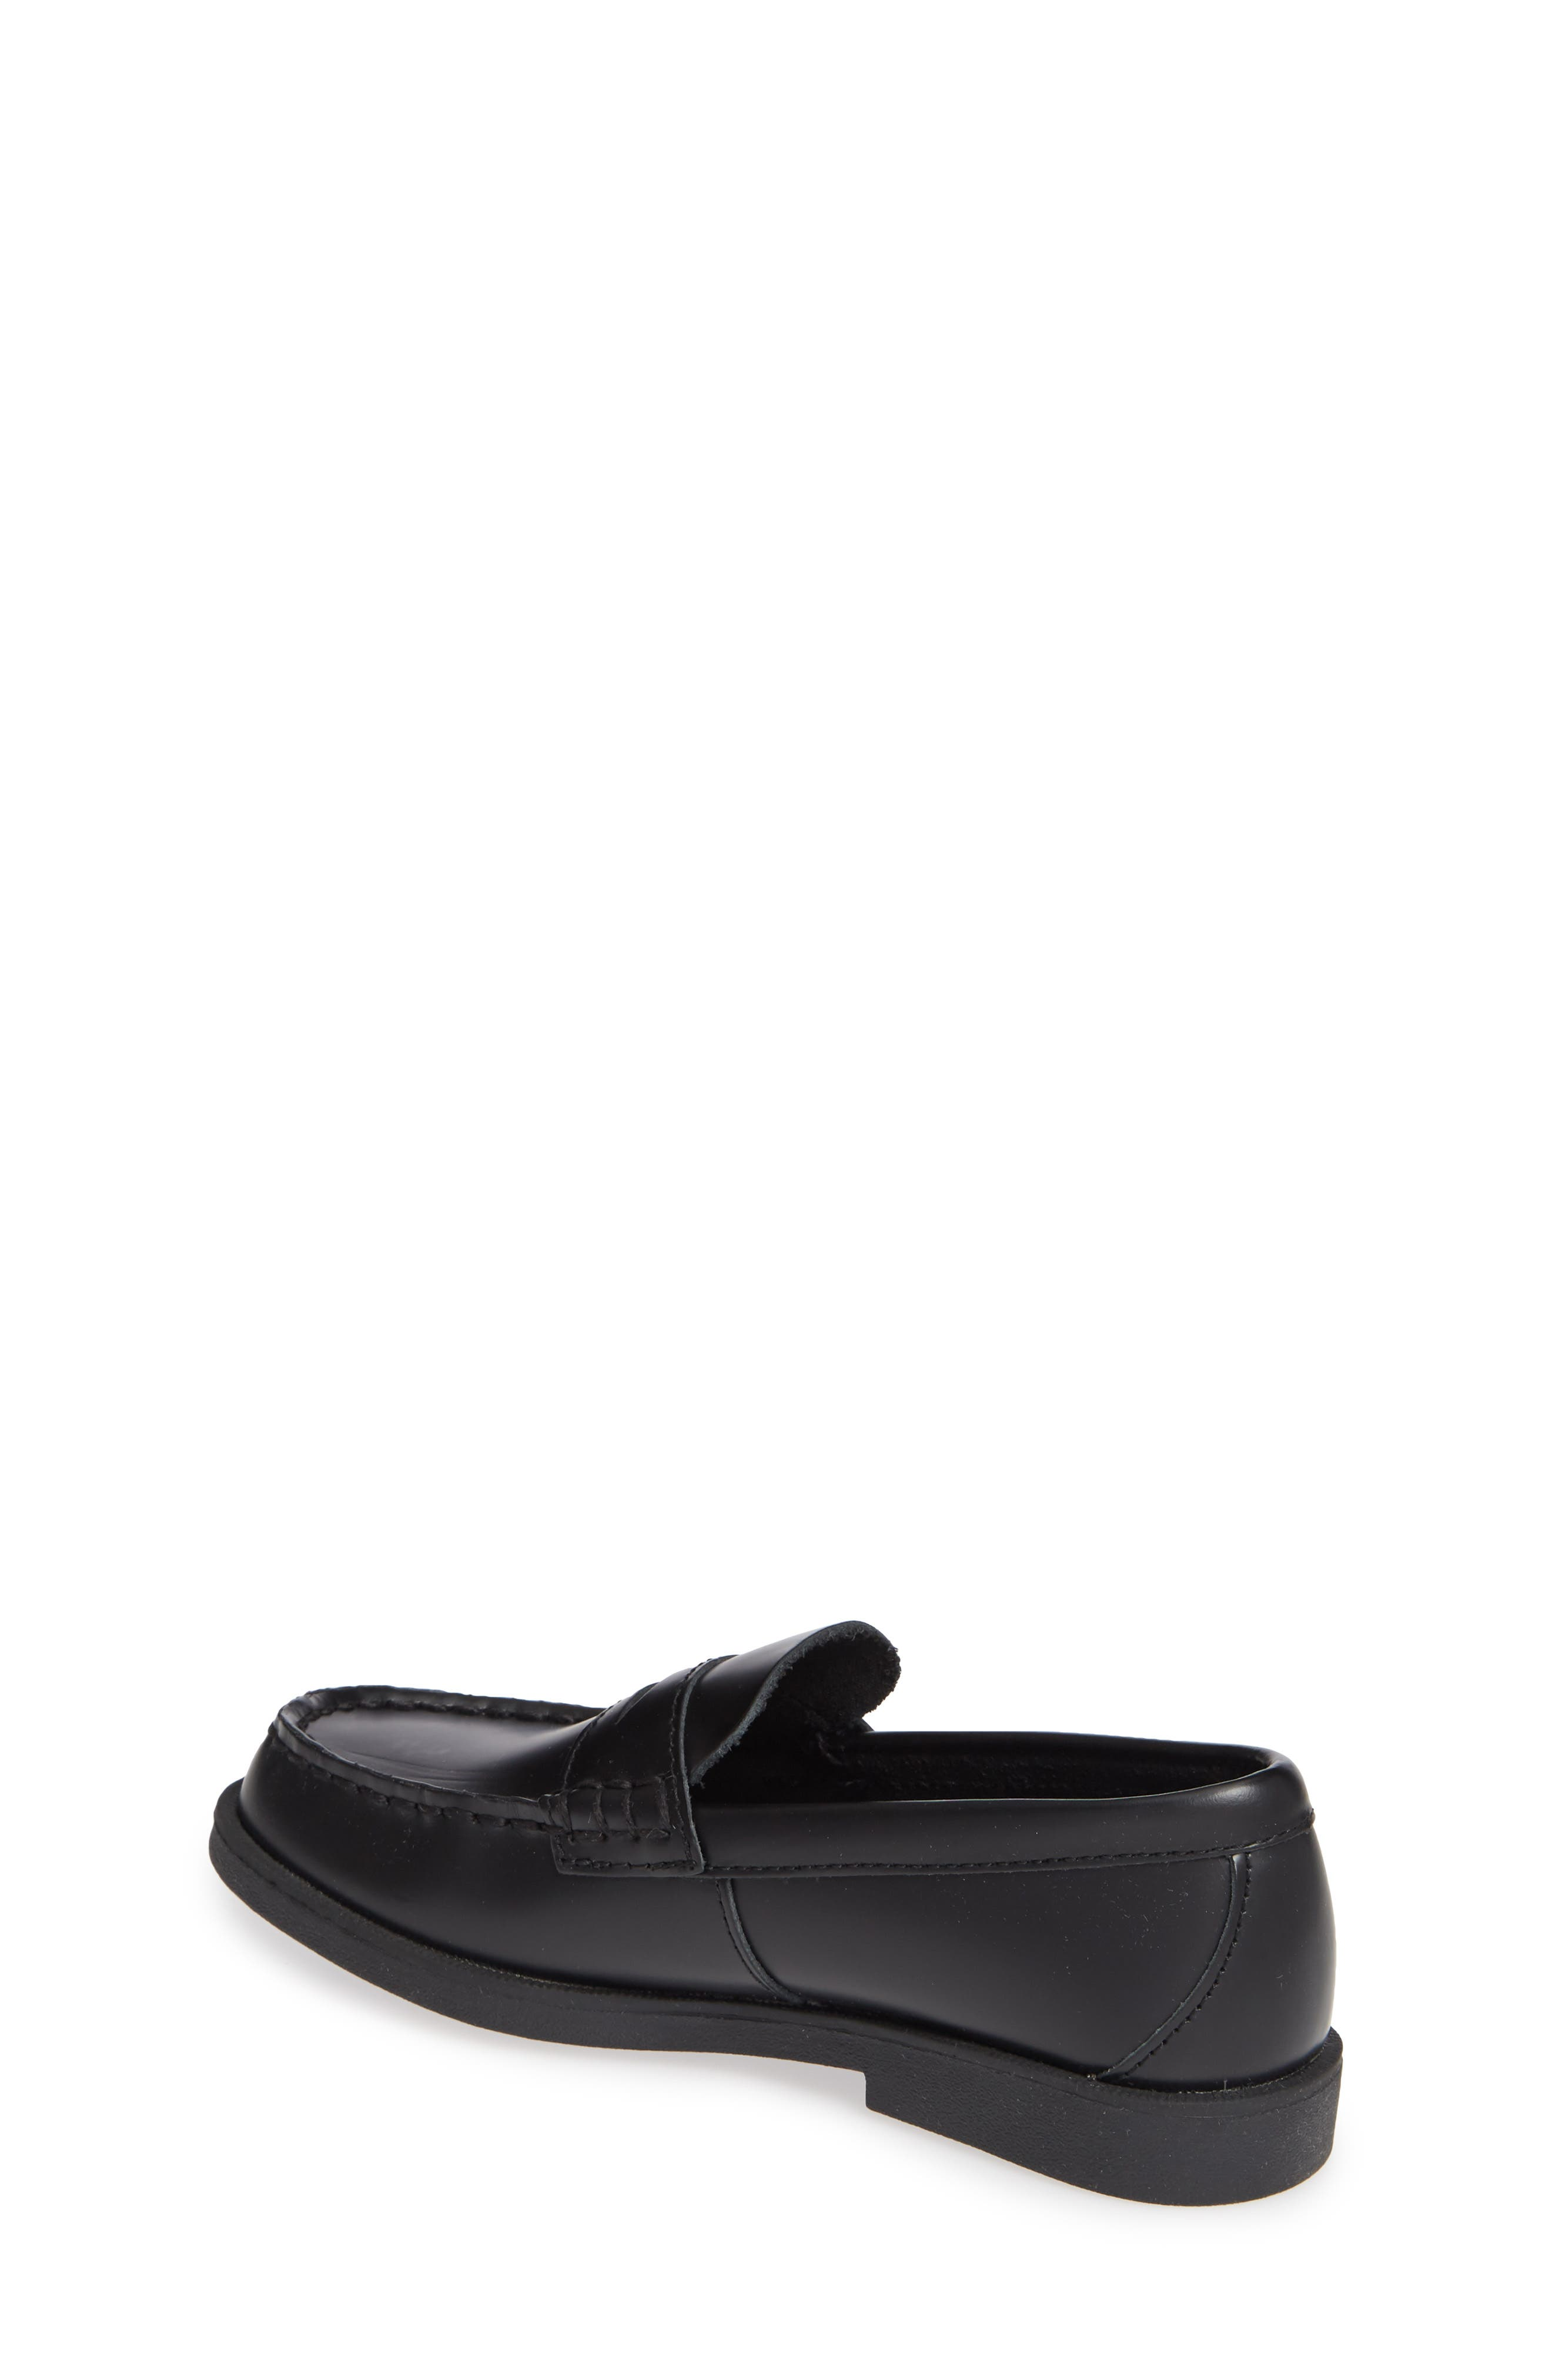 SPERRY KIDS,                             'Colton' Loafer,                             Alternate thumbnail 3, color,                             BLACK LEATHER